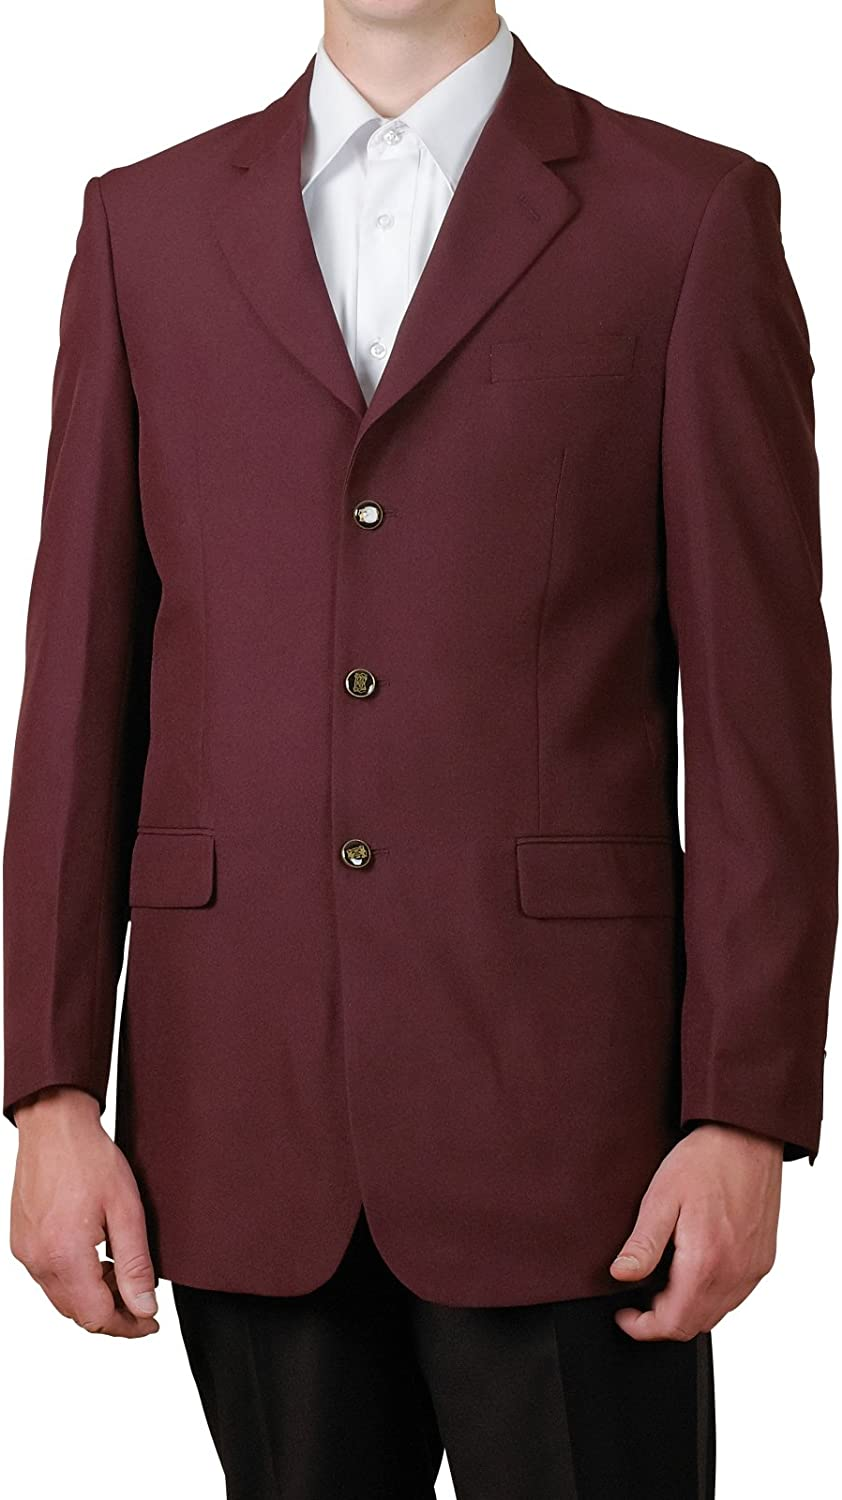 New Mens 3 Button Single Breasted Burgundy/Maroon Blazer Sportcoat Suit Jacket